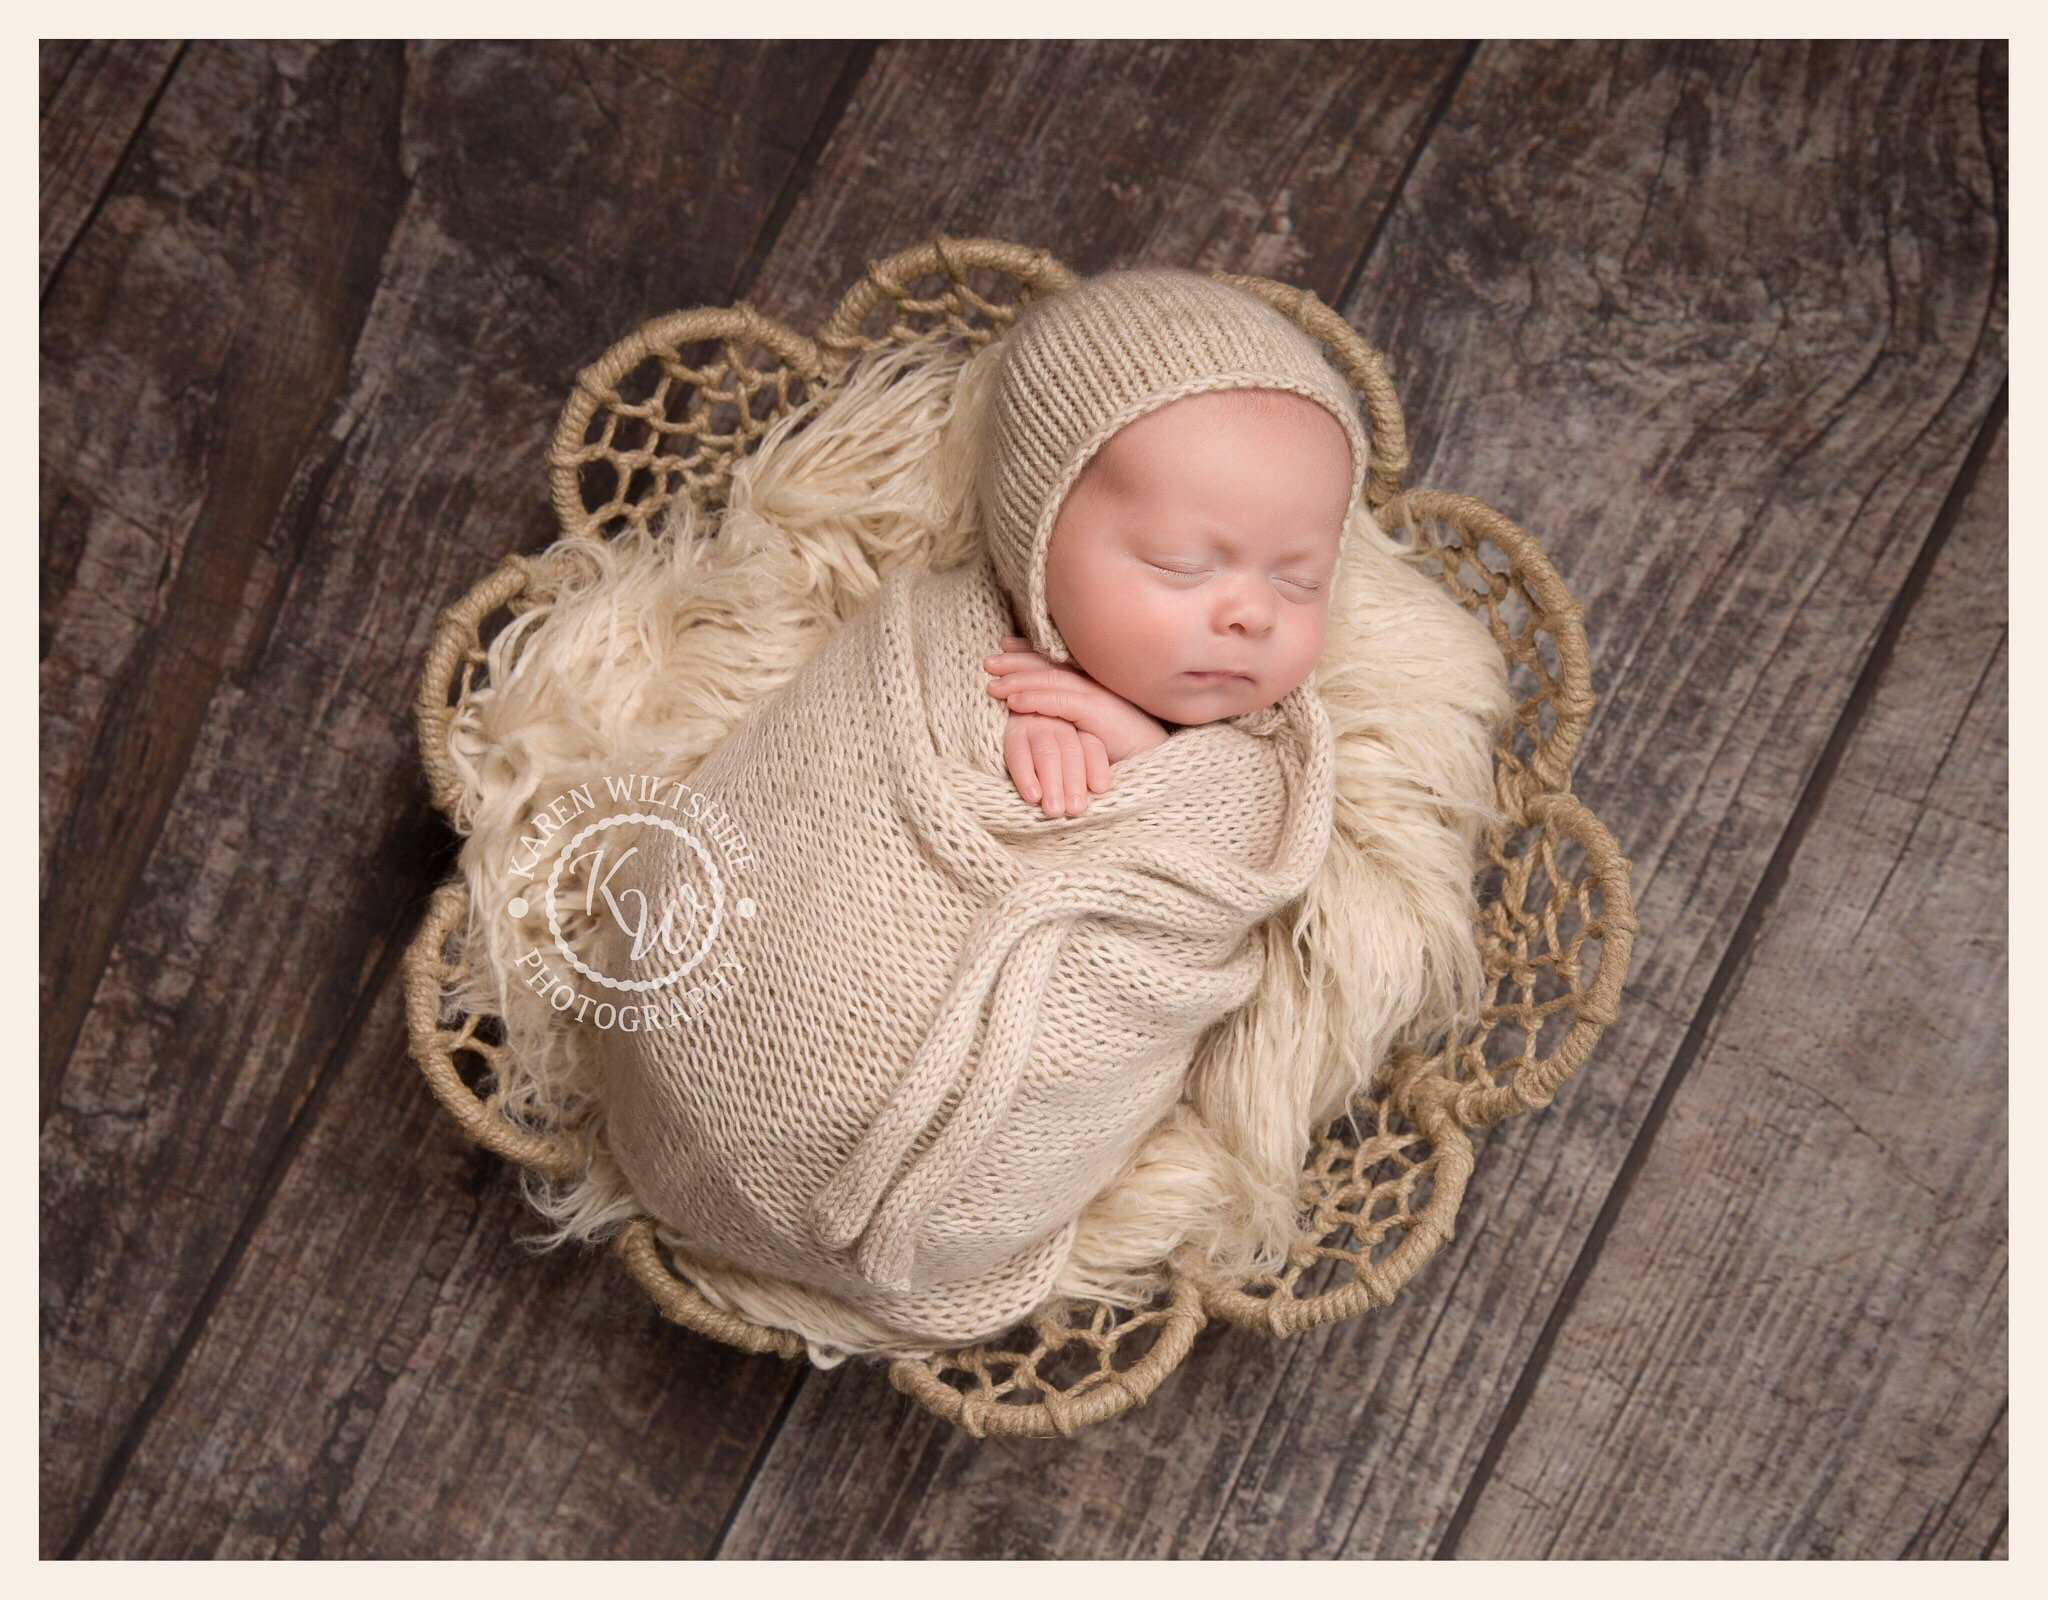 Jute Newborn Photography Basket Props Baby Flokati Photo Shoot Accessories Basket For Studio Posing Bowl Prop